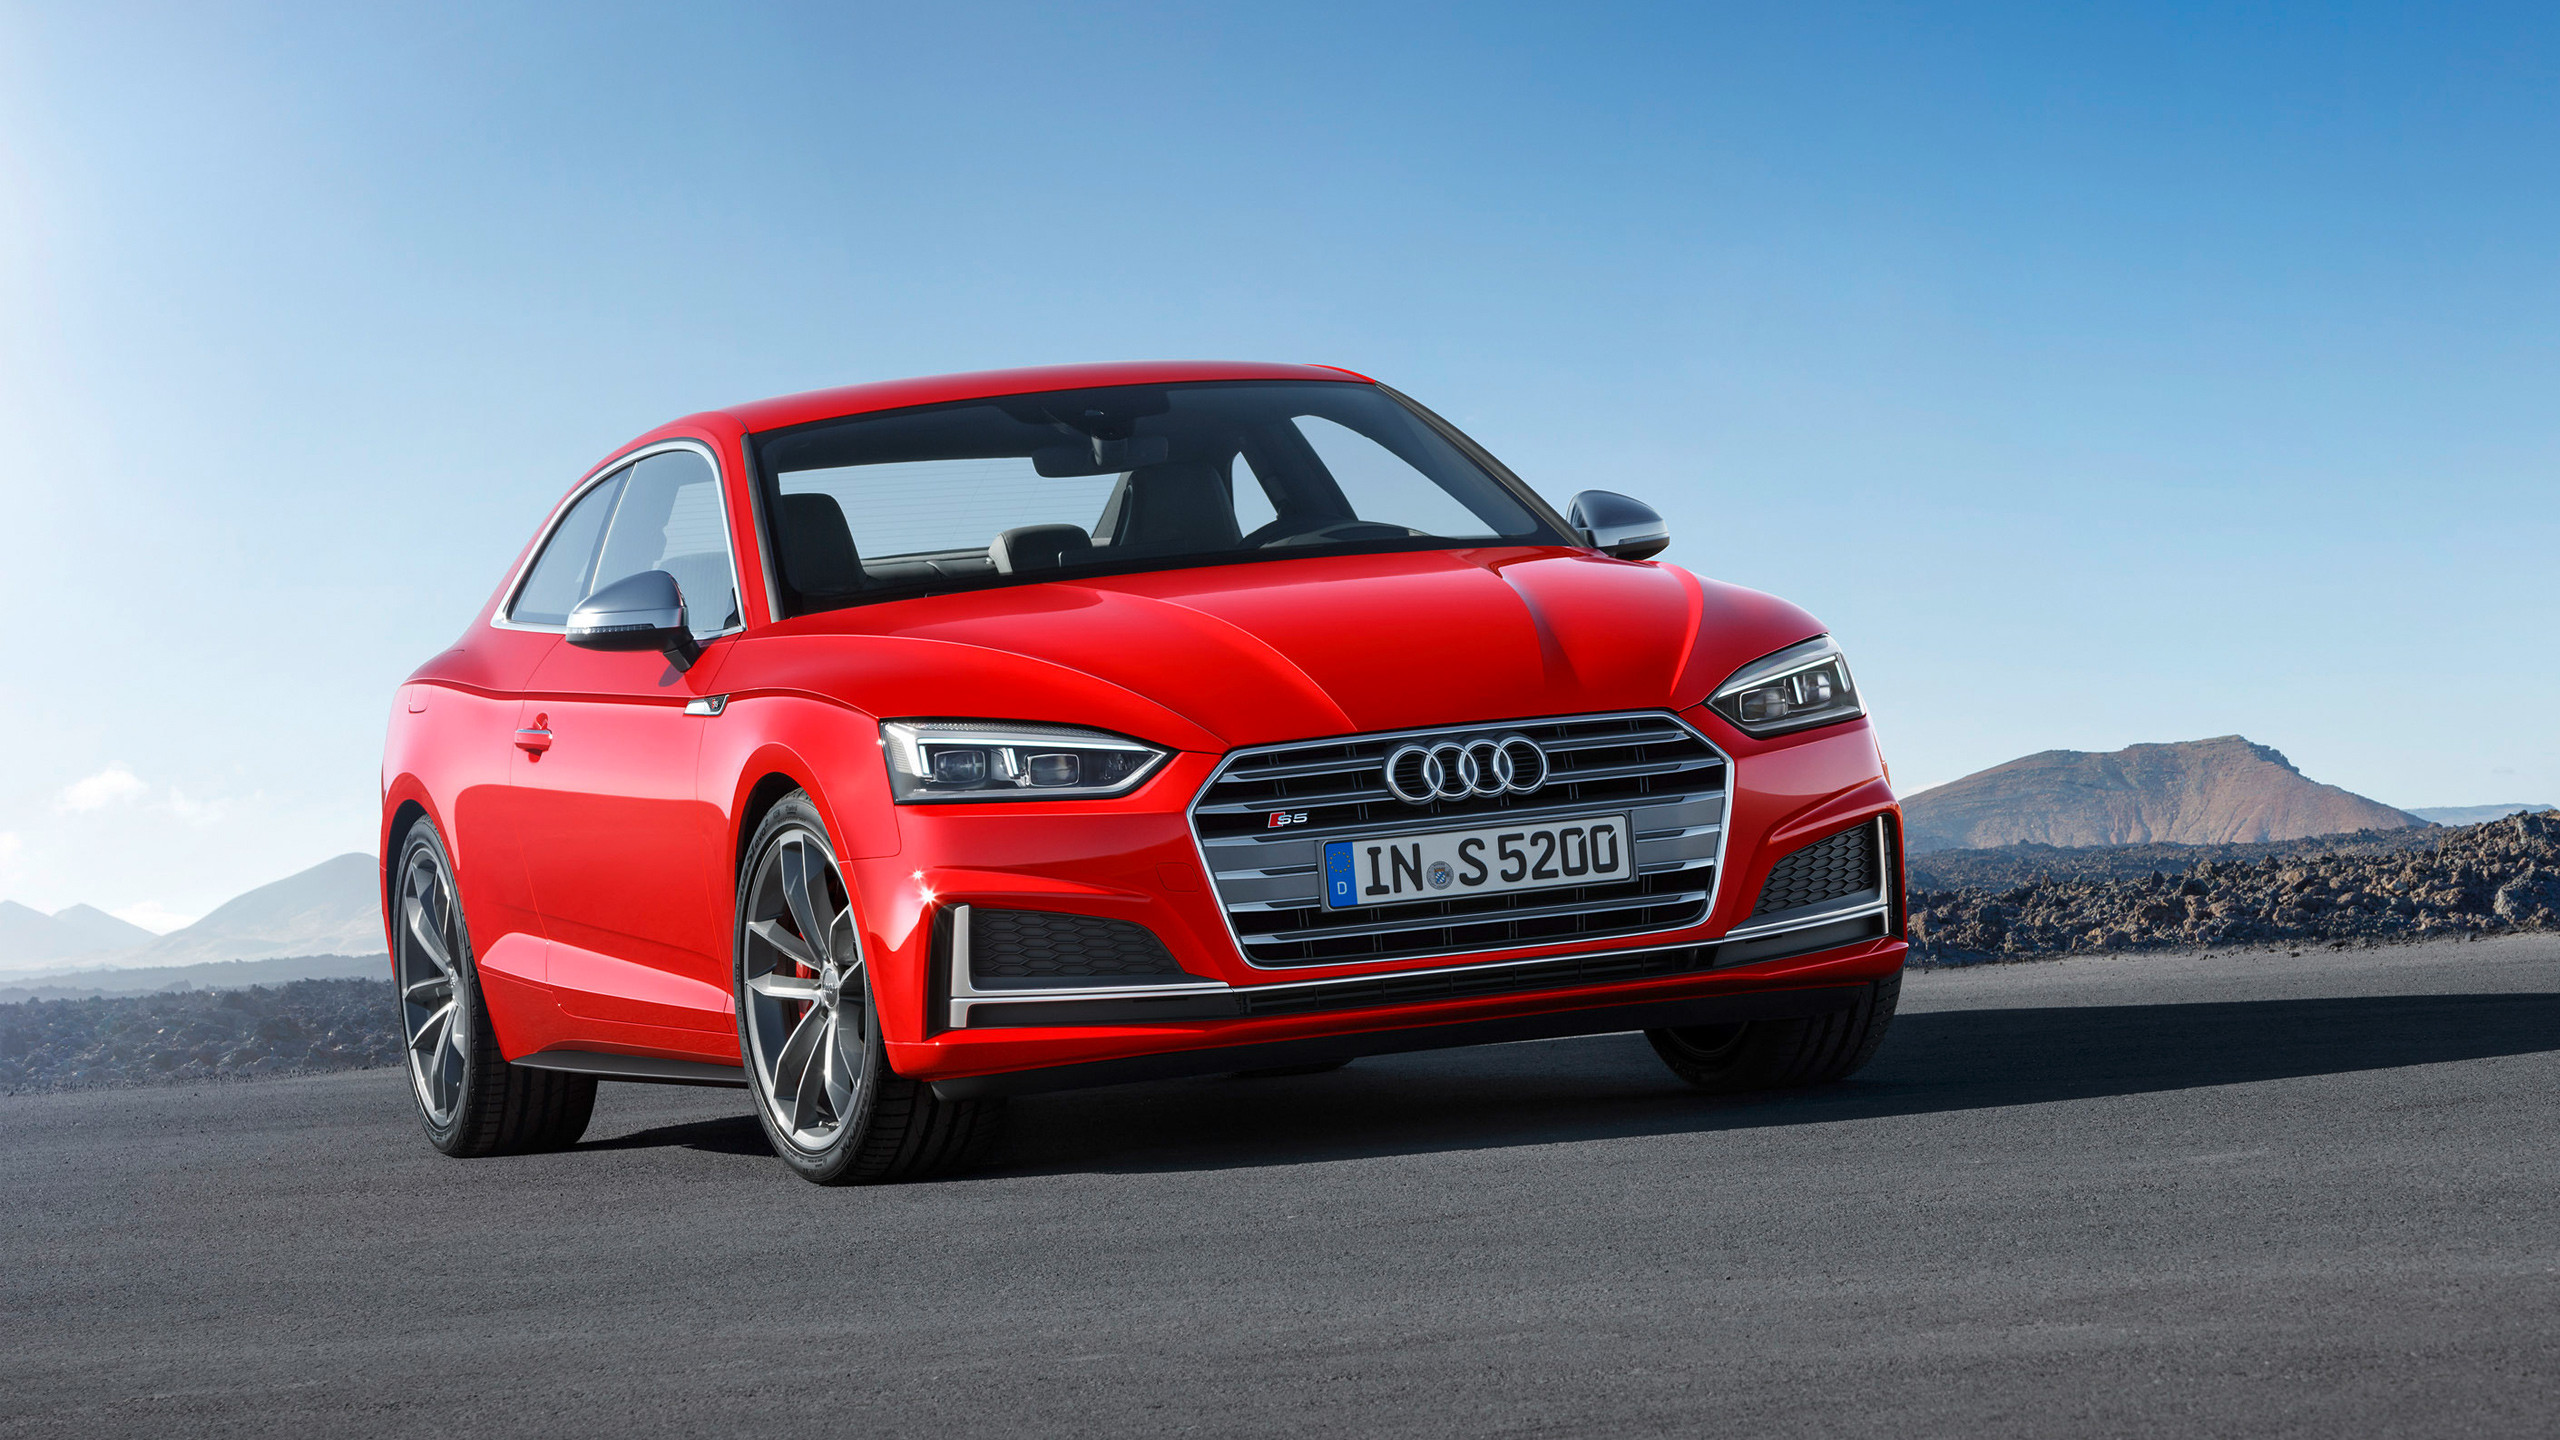 Res: 2560x1440, 2016 Audi S5 Coupe